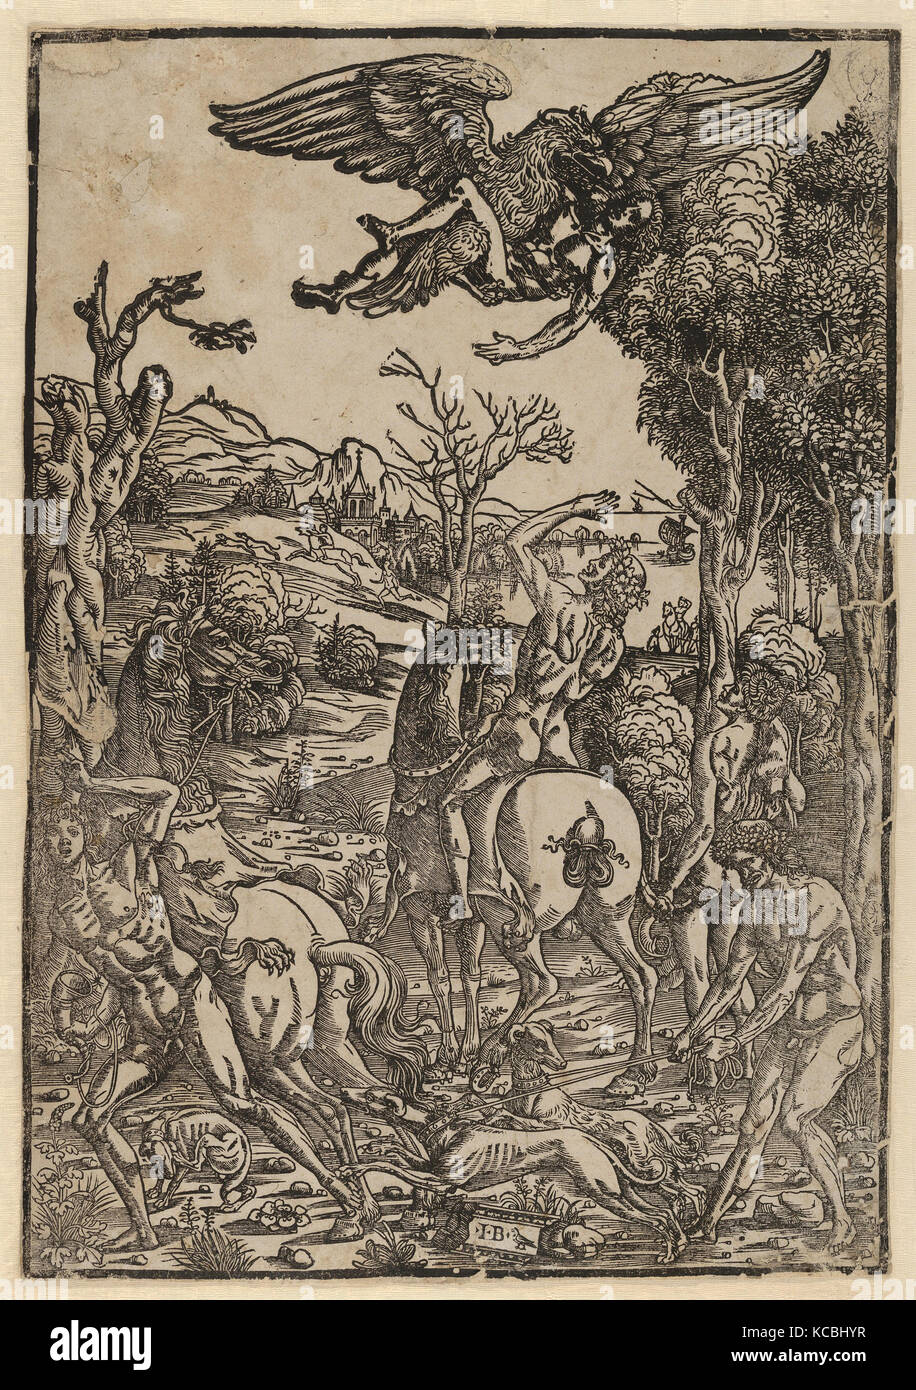 Drawings and Prints, Print, Zeus as an eagle, abducting Ganymede, Artist, Giovanni Battista Palumba, Italian, active - Stock Image